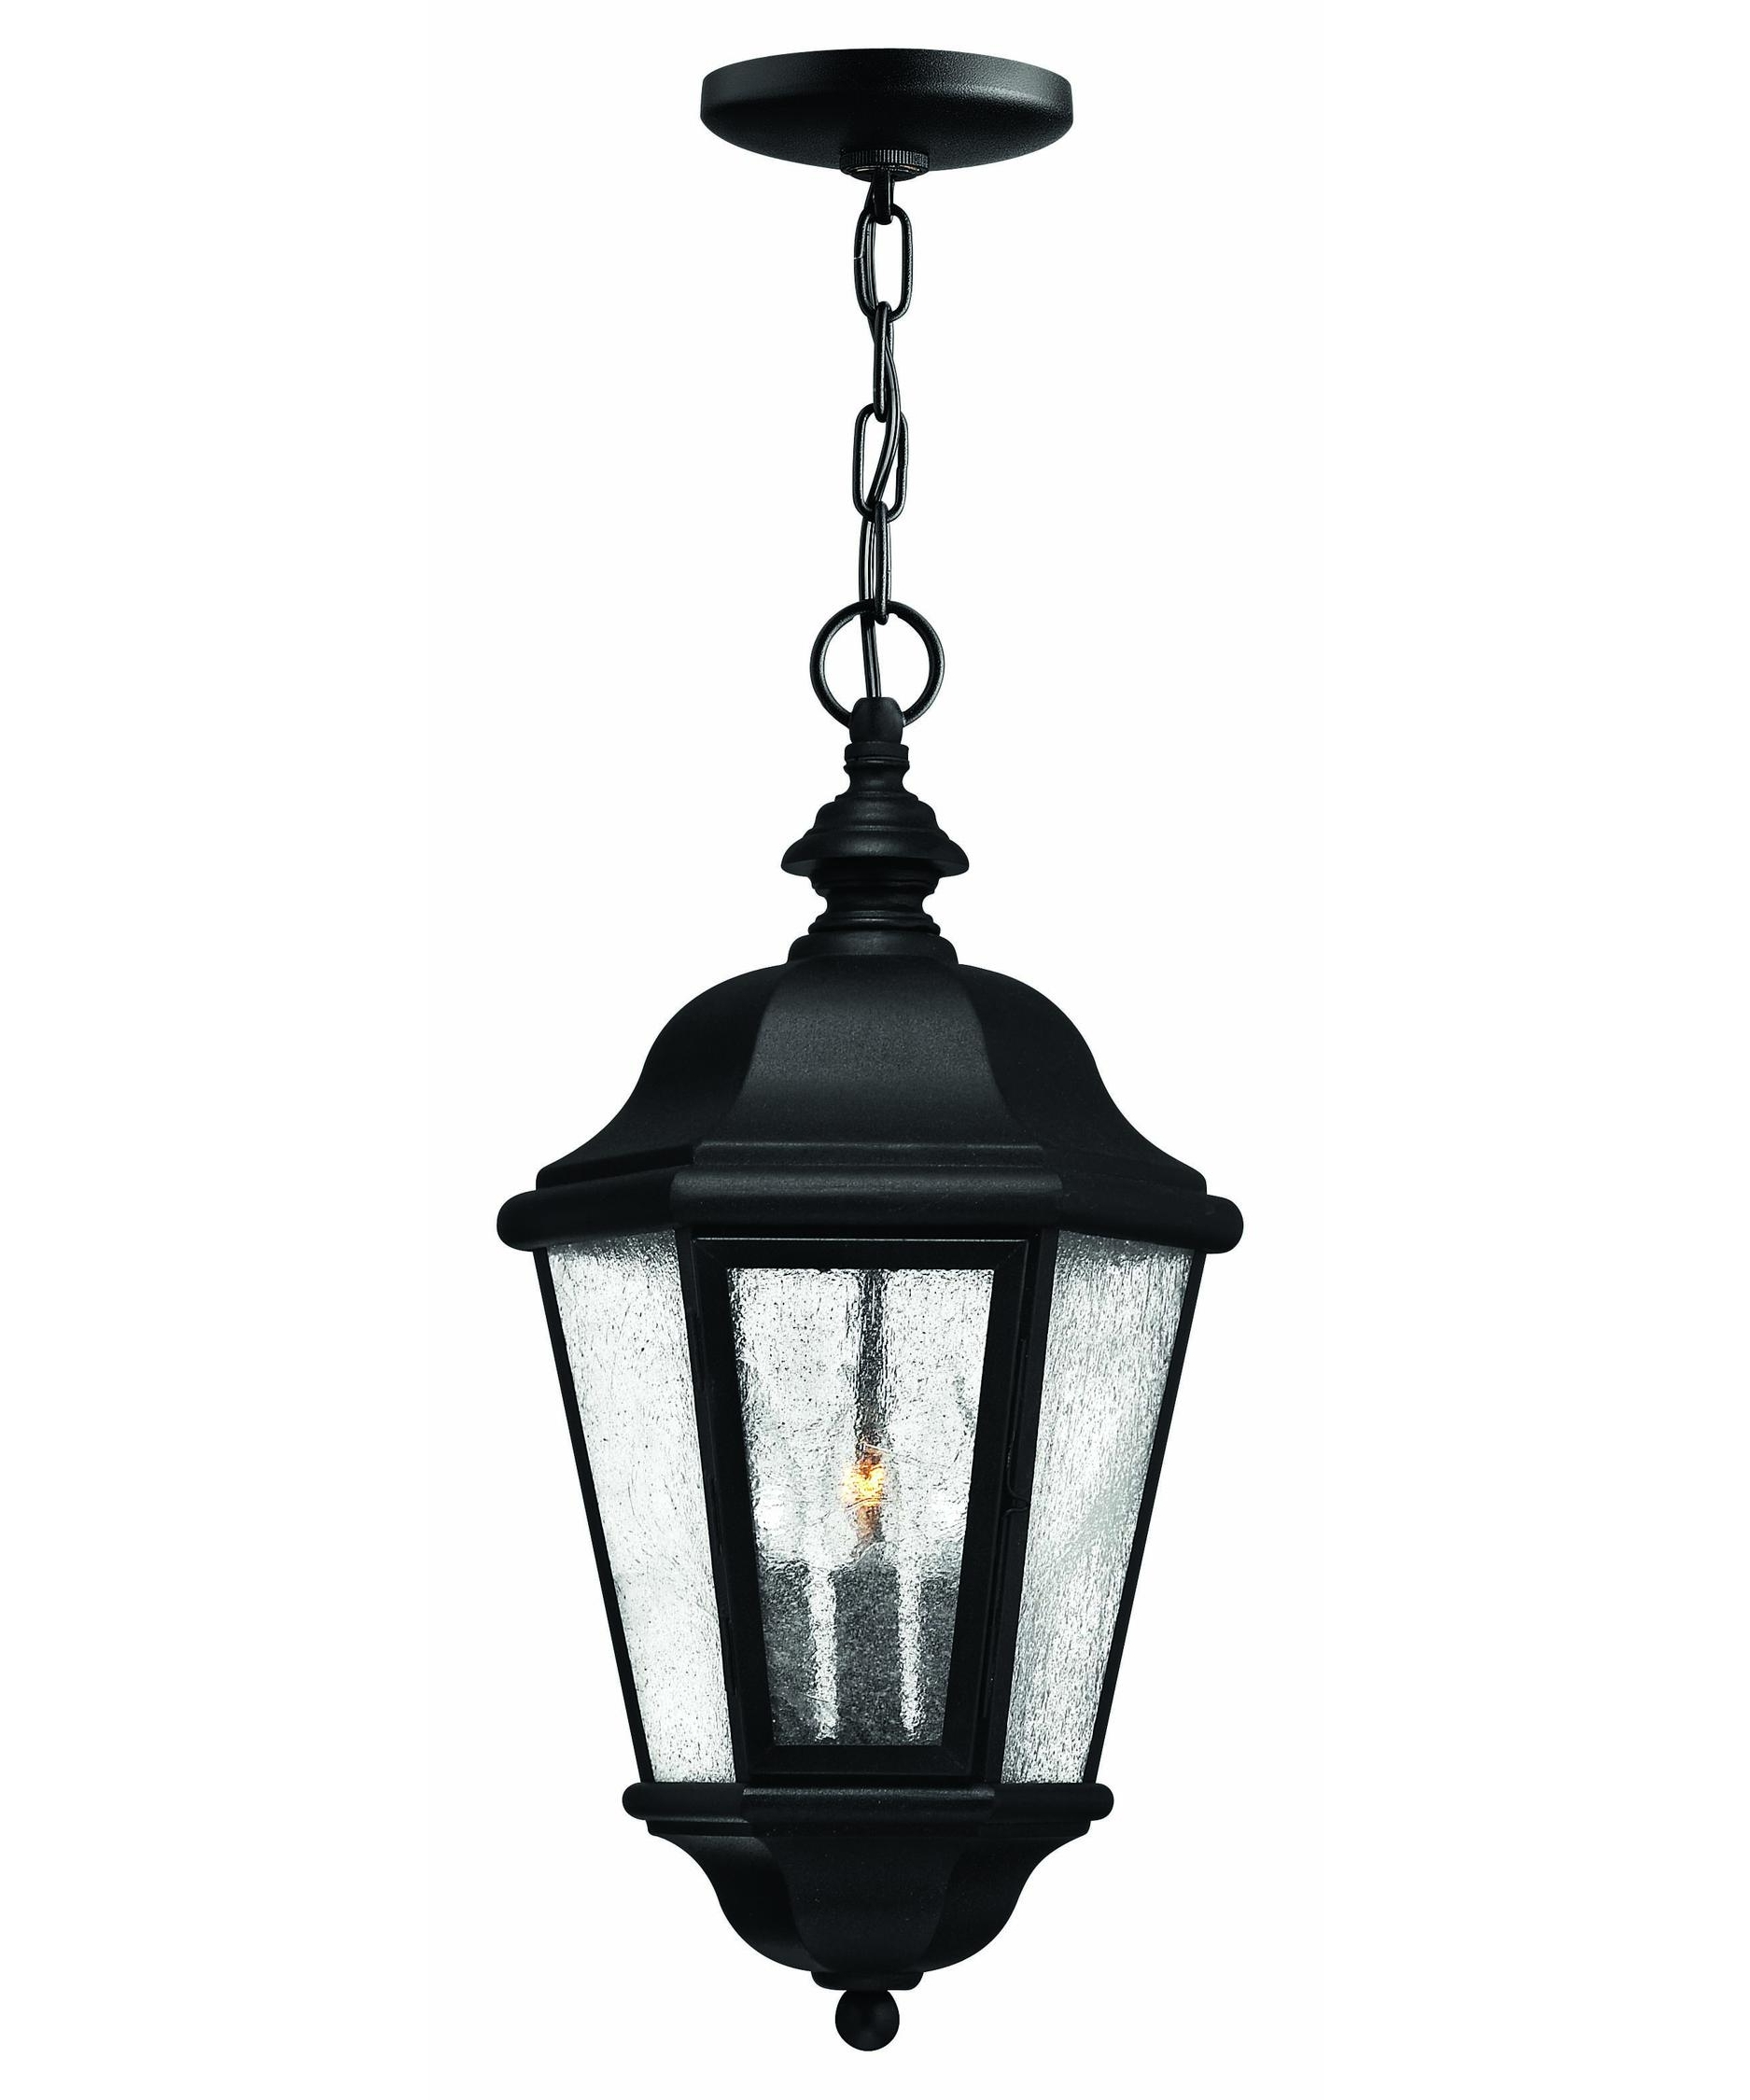 Hinkley Lighting 1672 Edgewater 10 Inch Wide 3 Light Outdoor Hanging Regarding Newest Outdoor Hanging Lamps At Amazon (Gallery 1 of 20)